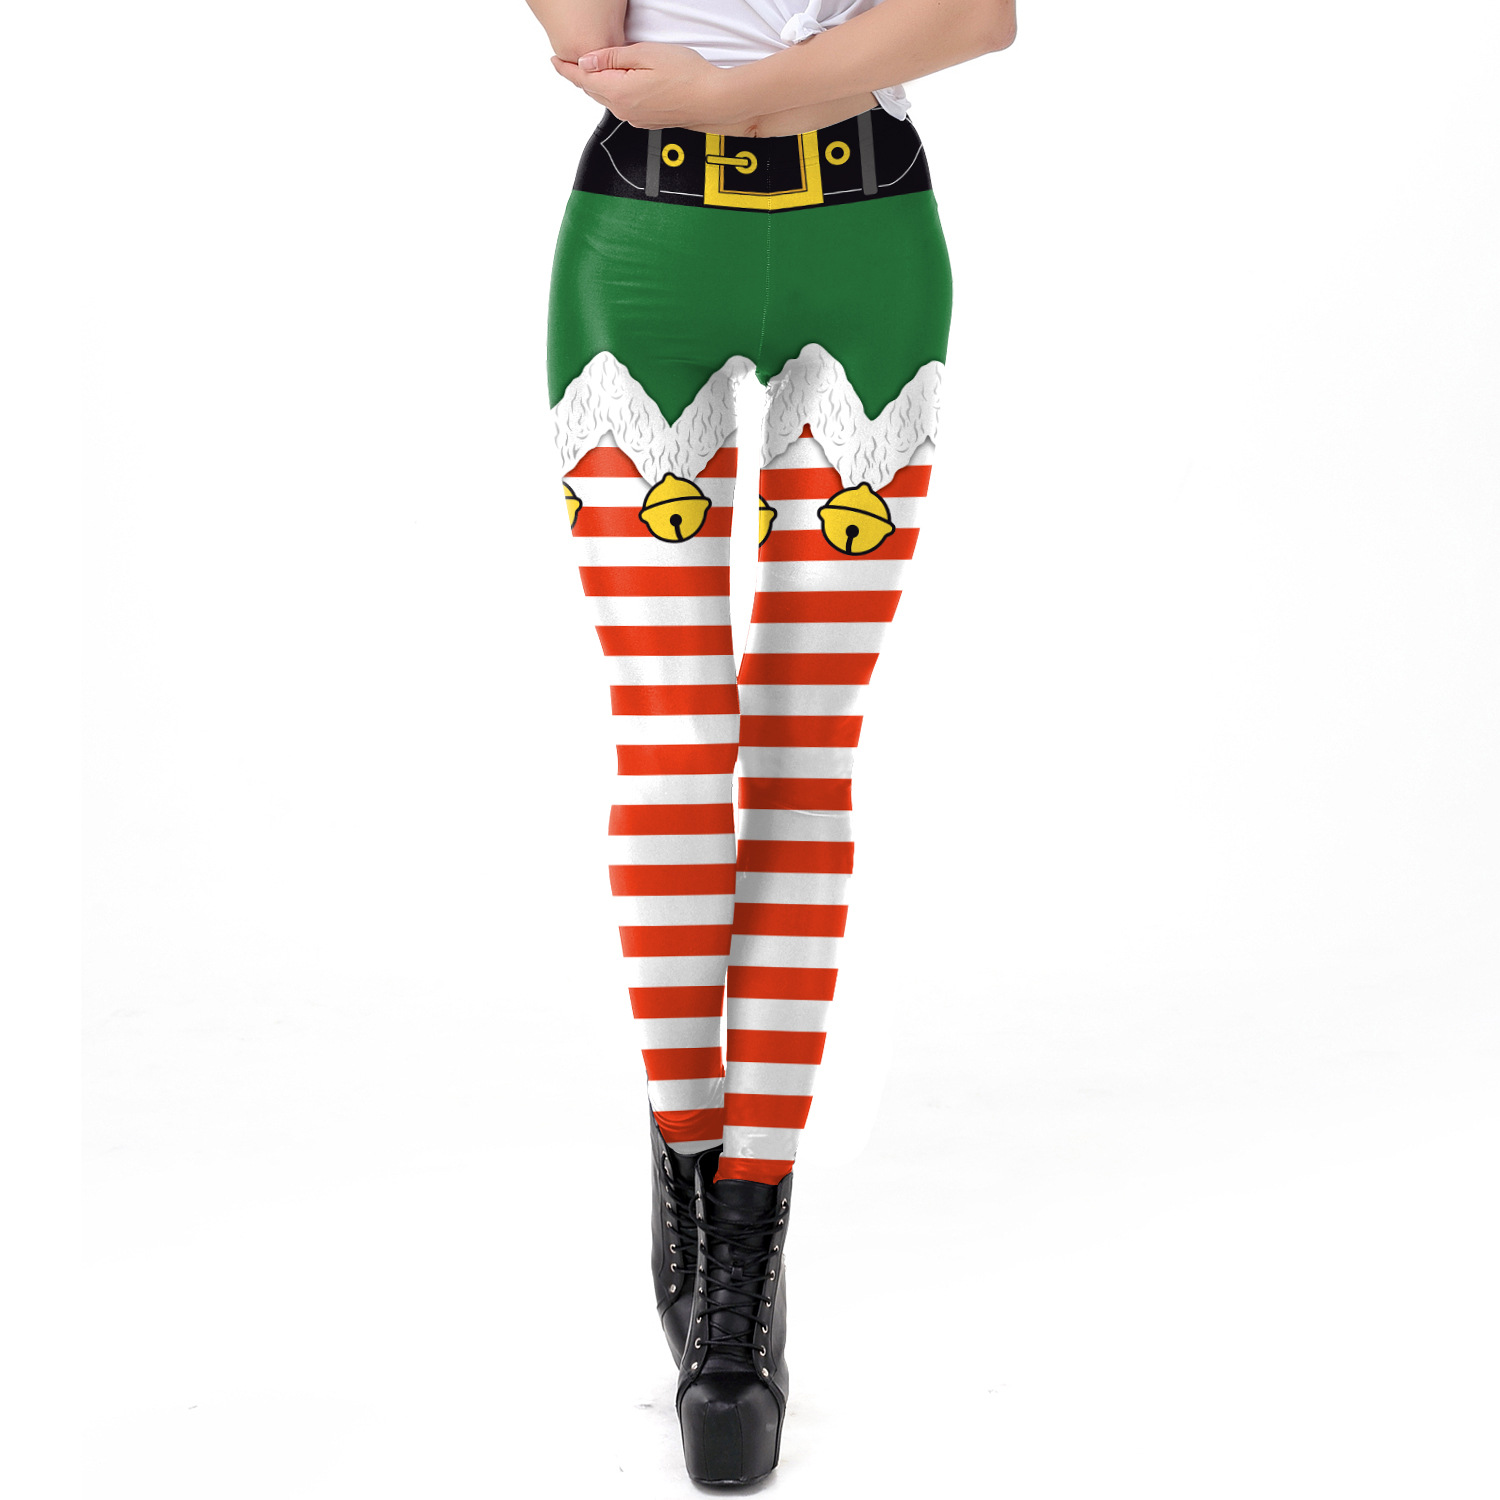 9085857b96483 Buy red and white striped legging and get free shipping on AliExpress.com